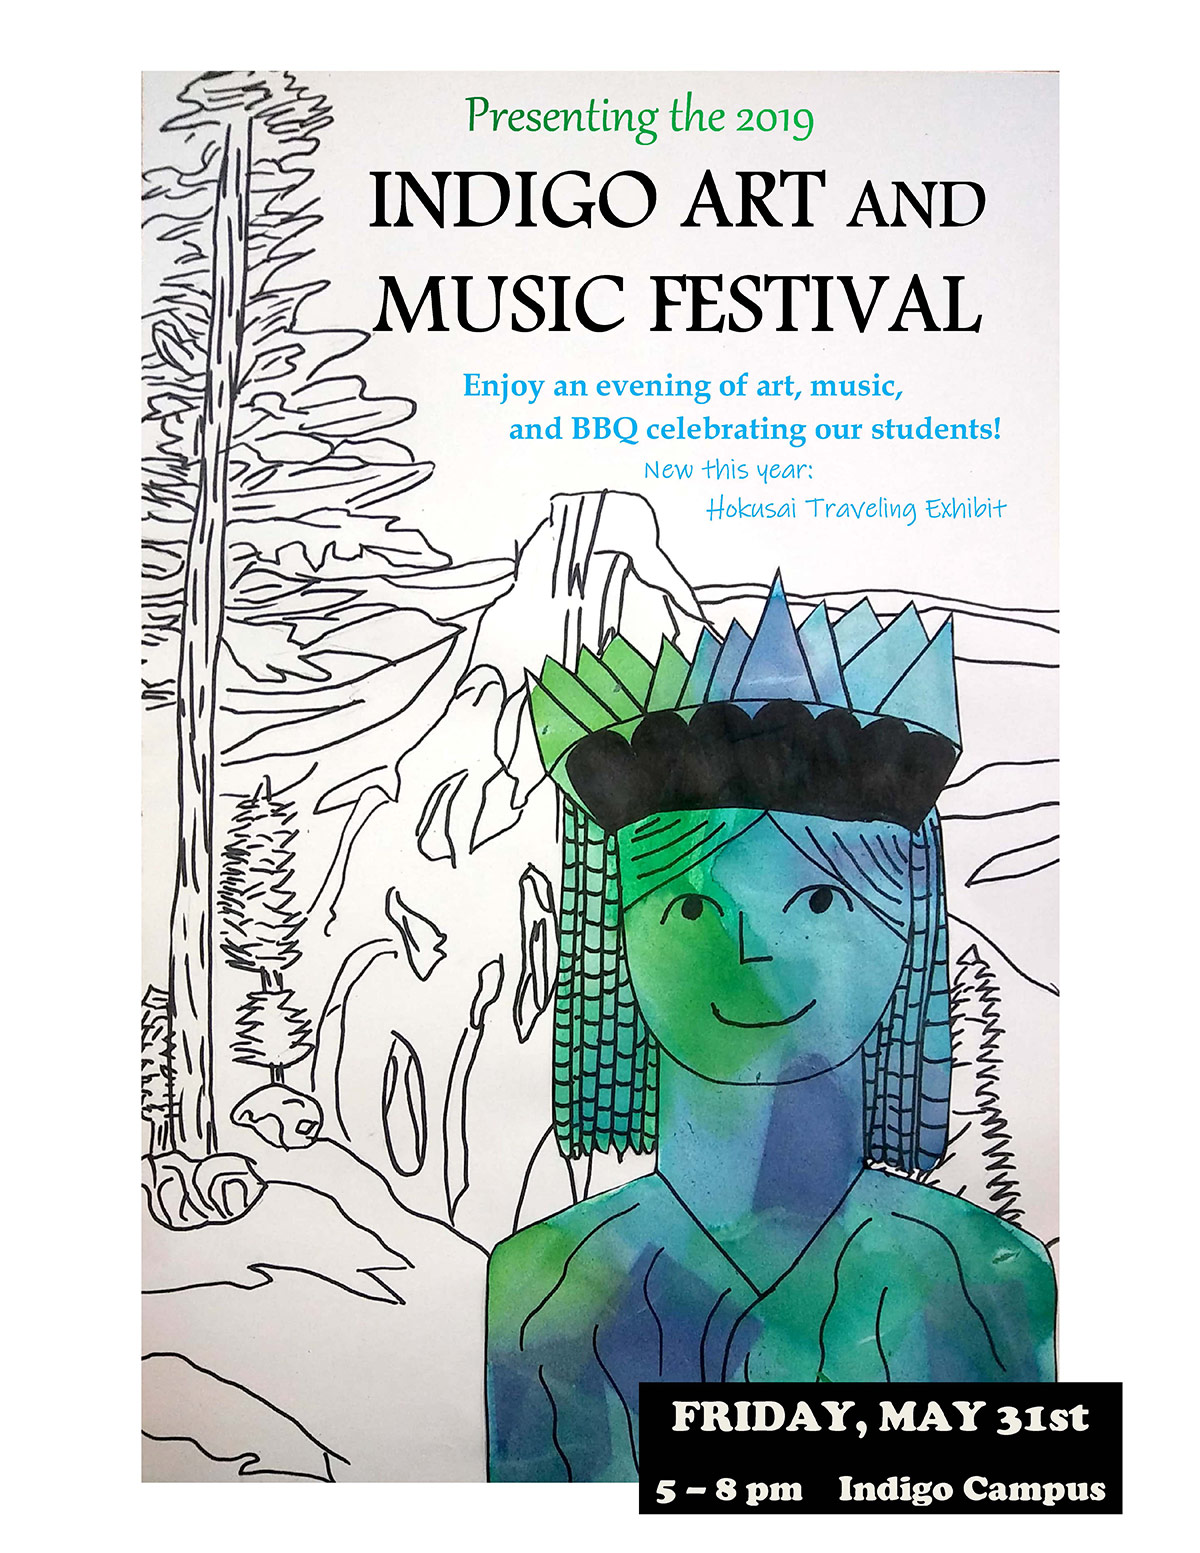 Indigo Art and Music Festival